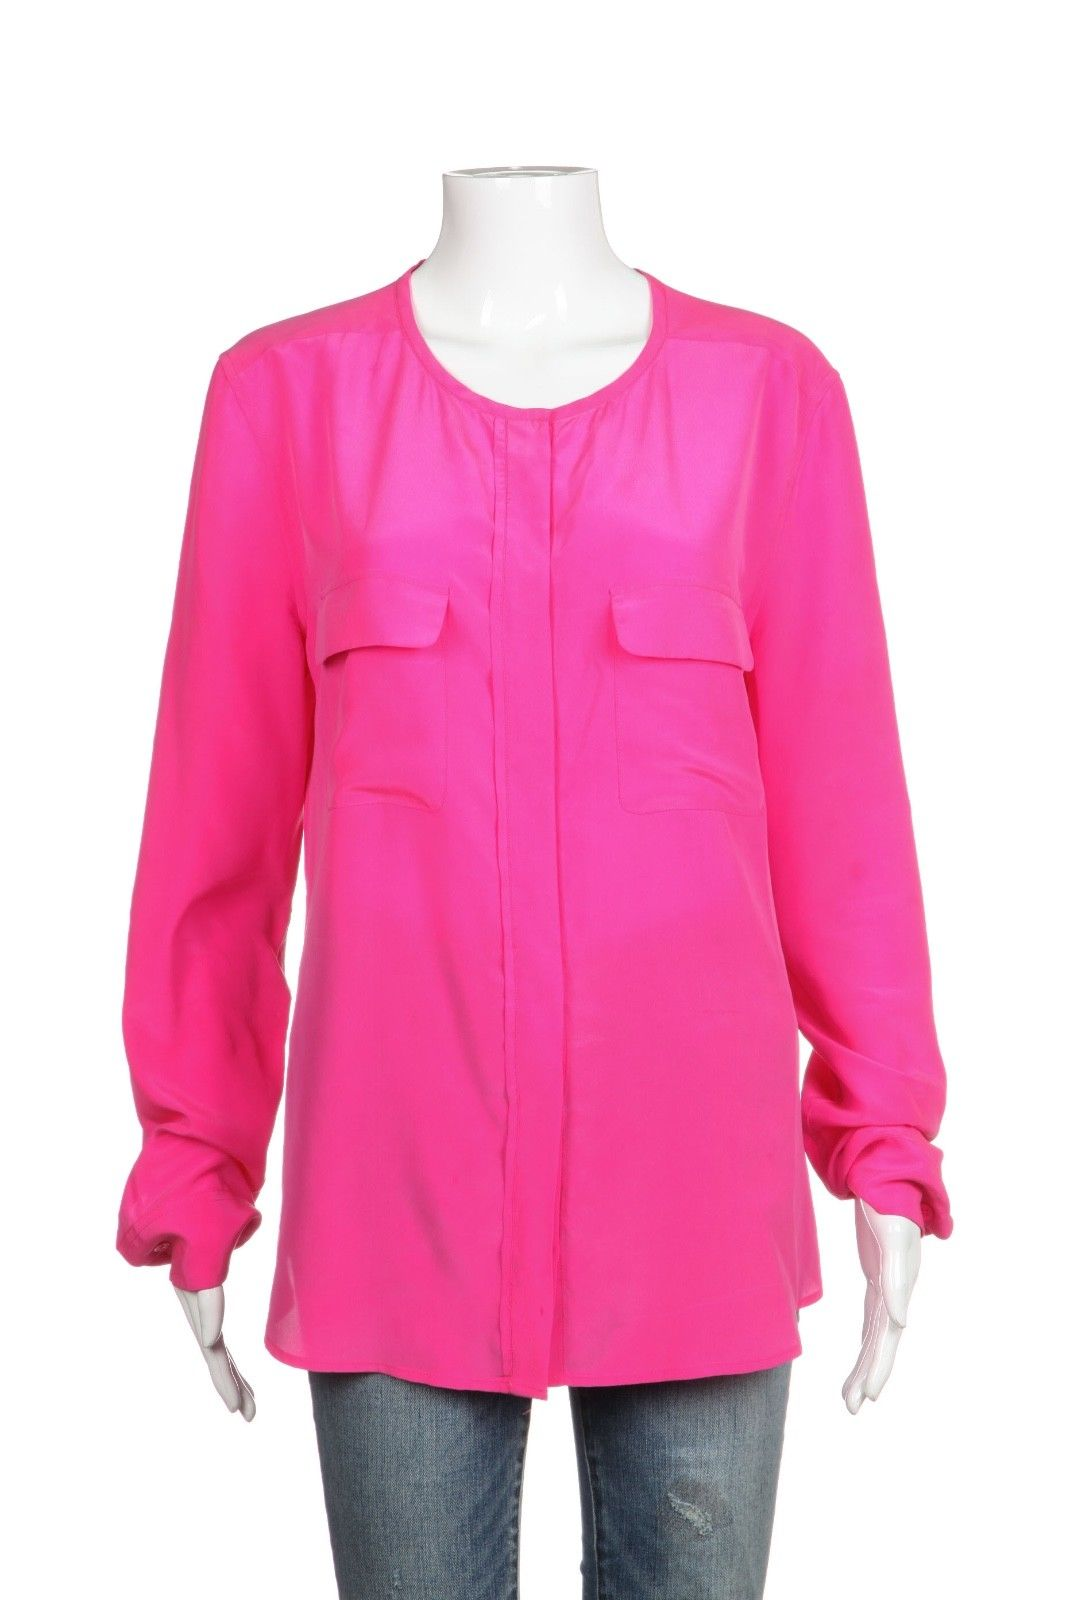 EQUIPMENT 100% Silk Long Sleeve Tunic Blouse Top Size L